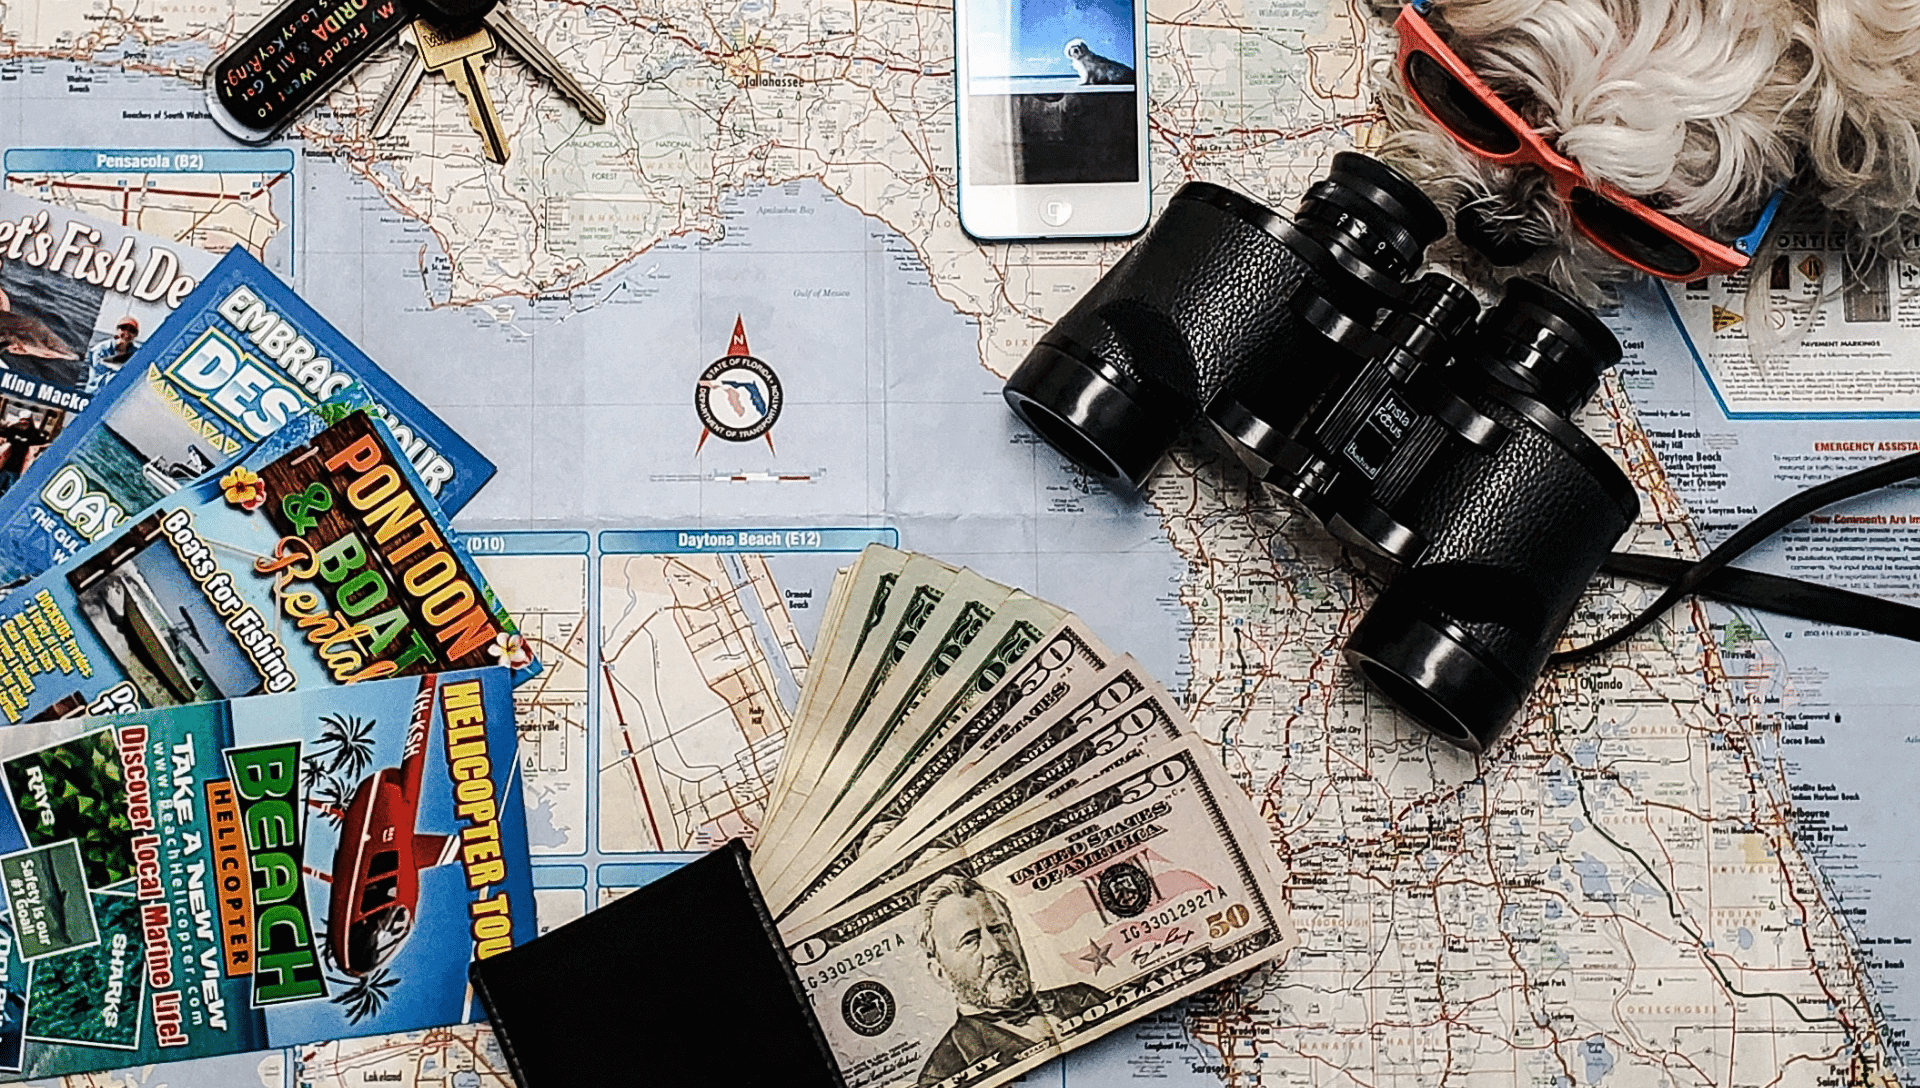 A United States map is laid out on a desk. On top of the map is cash money, attraction brochures, keys, and binoculars while planning how to save money on a road trip.